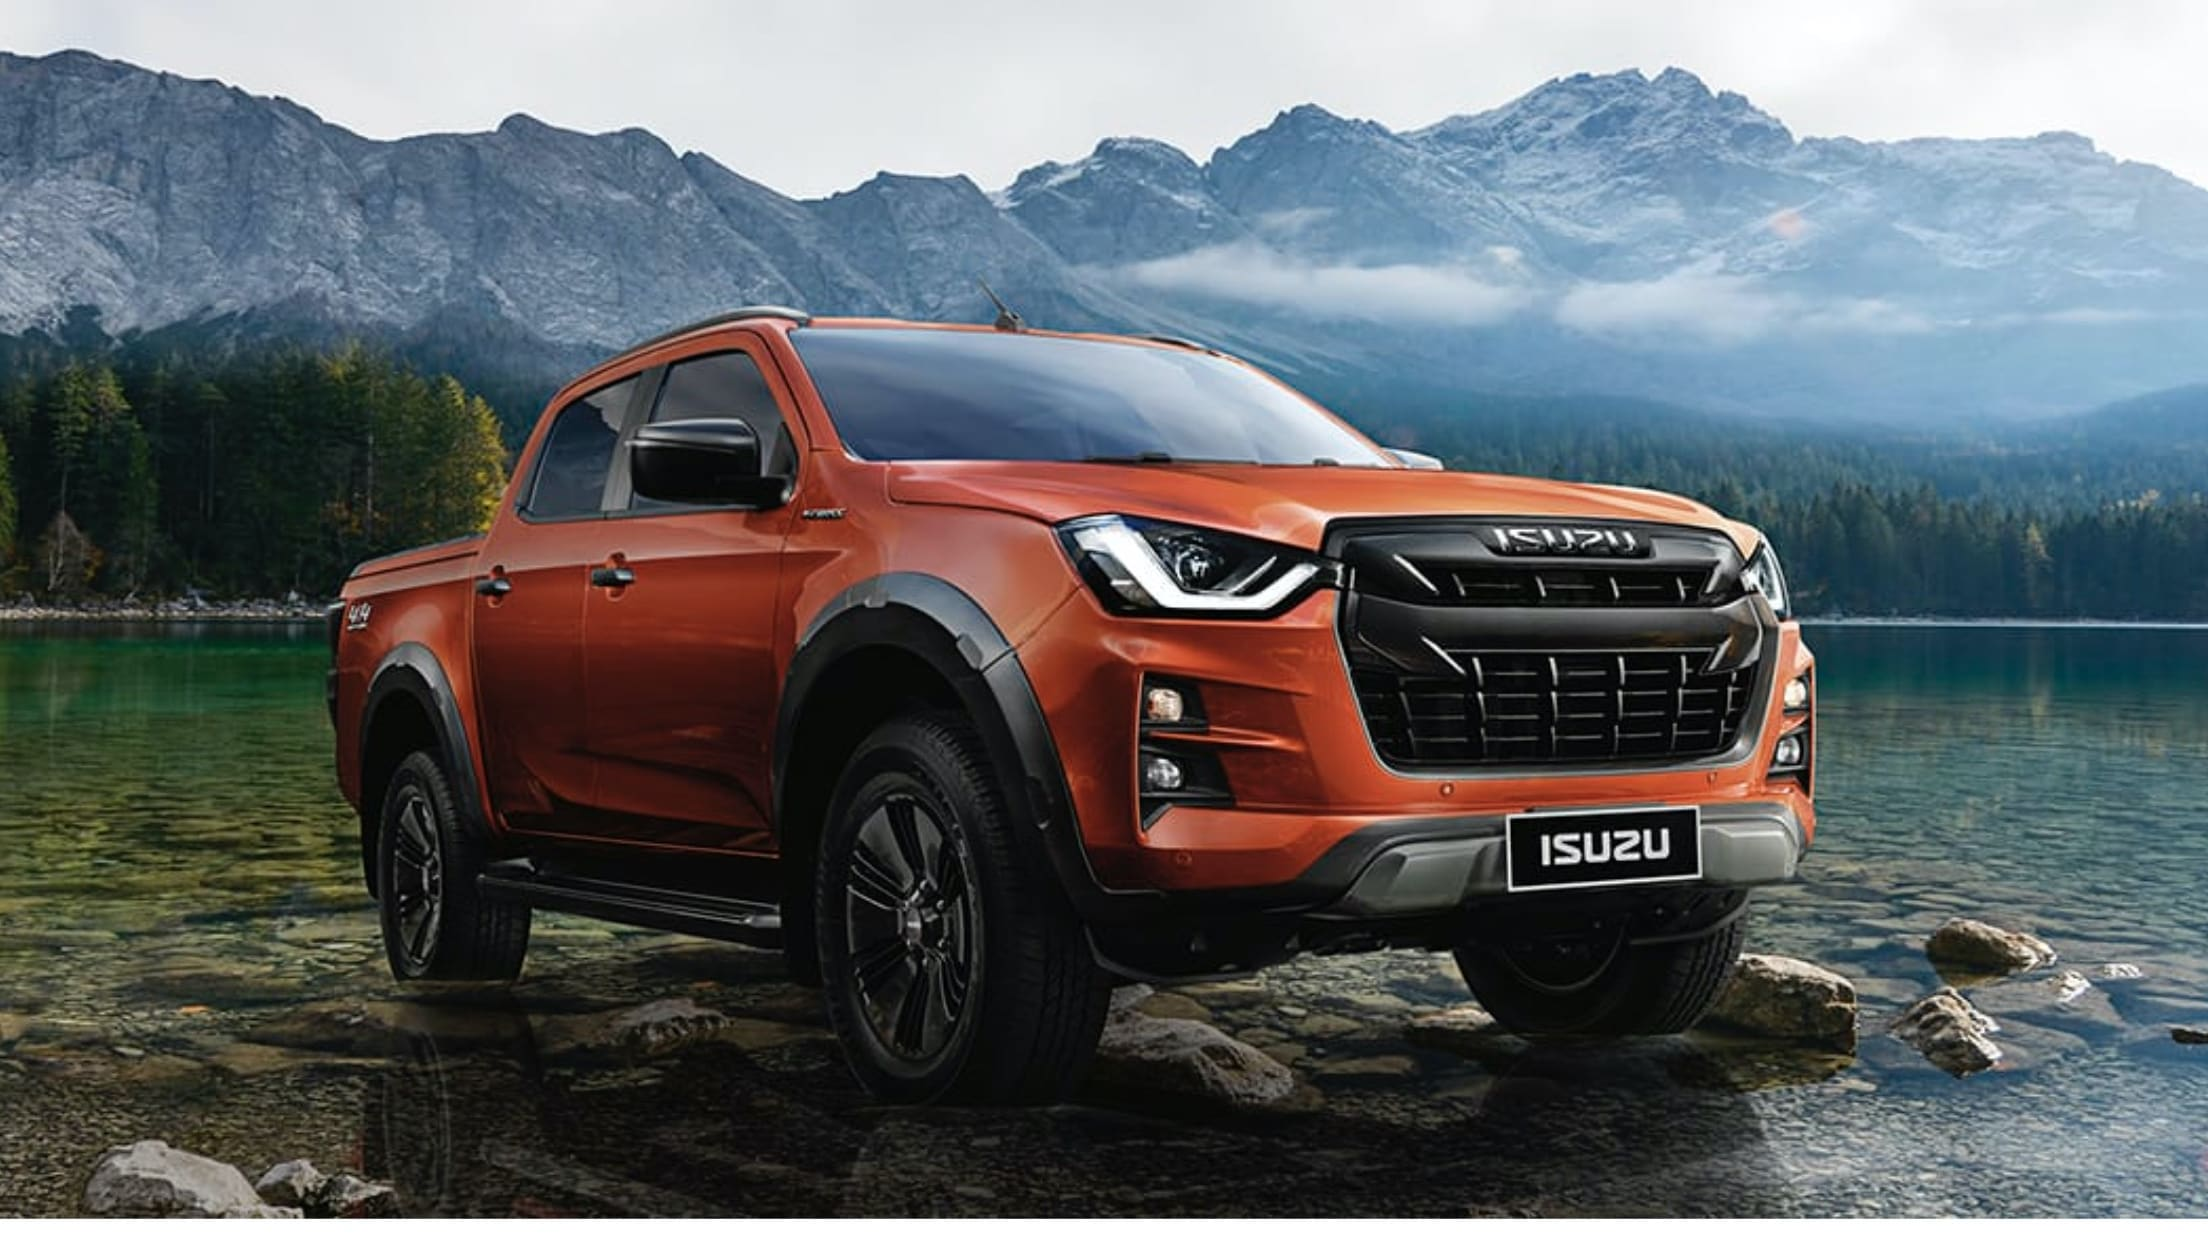 2020 Isuzu Dmax Redesign and Concept